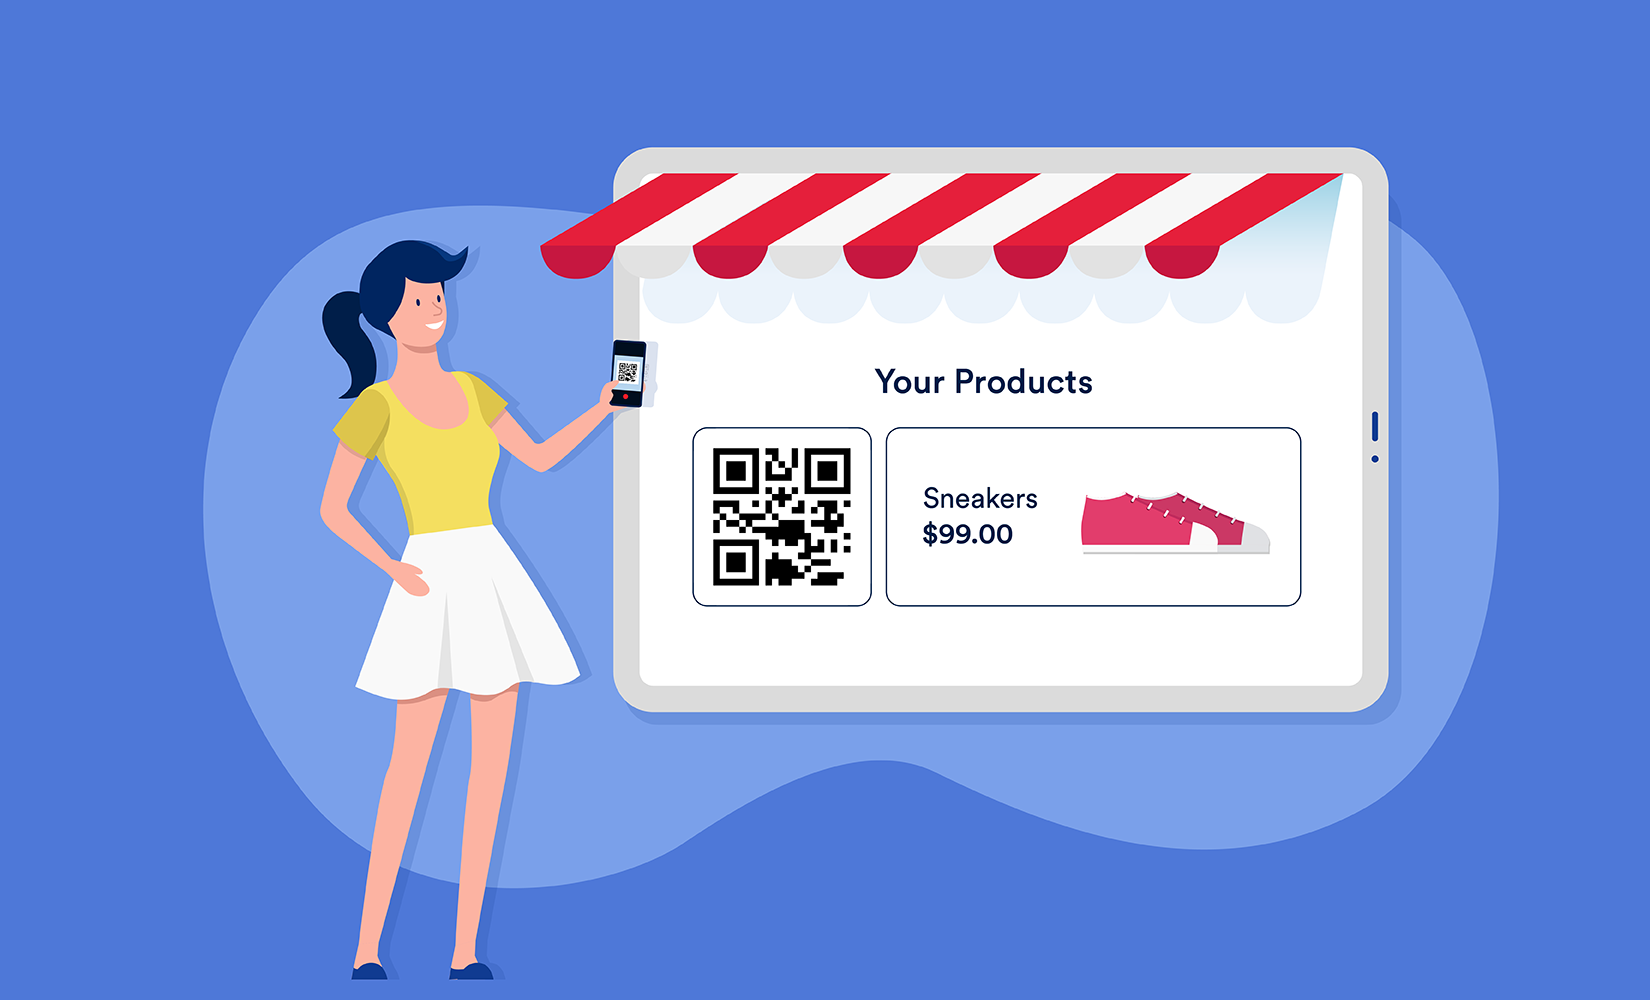 How to collect payments with QR codes